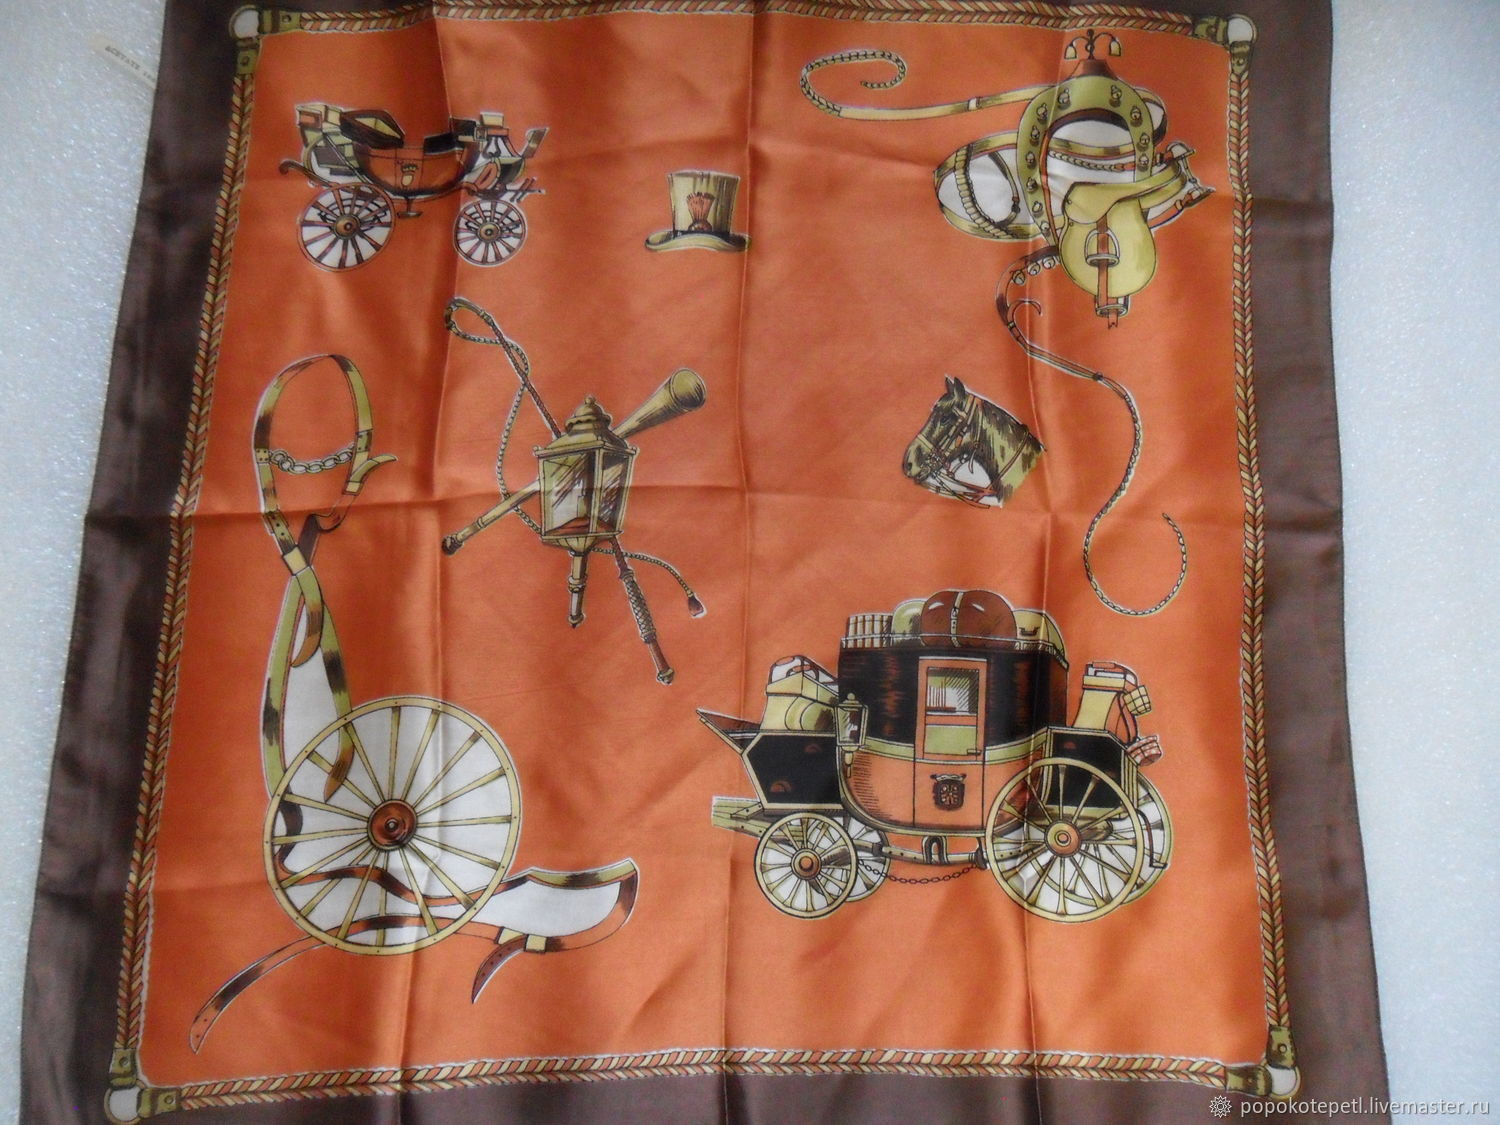 Vintage handkerchief patterned,acetate,vintage Europe, Vintage accessories, Novorossiysk,  Фото №1